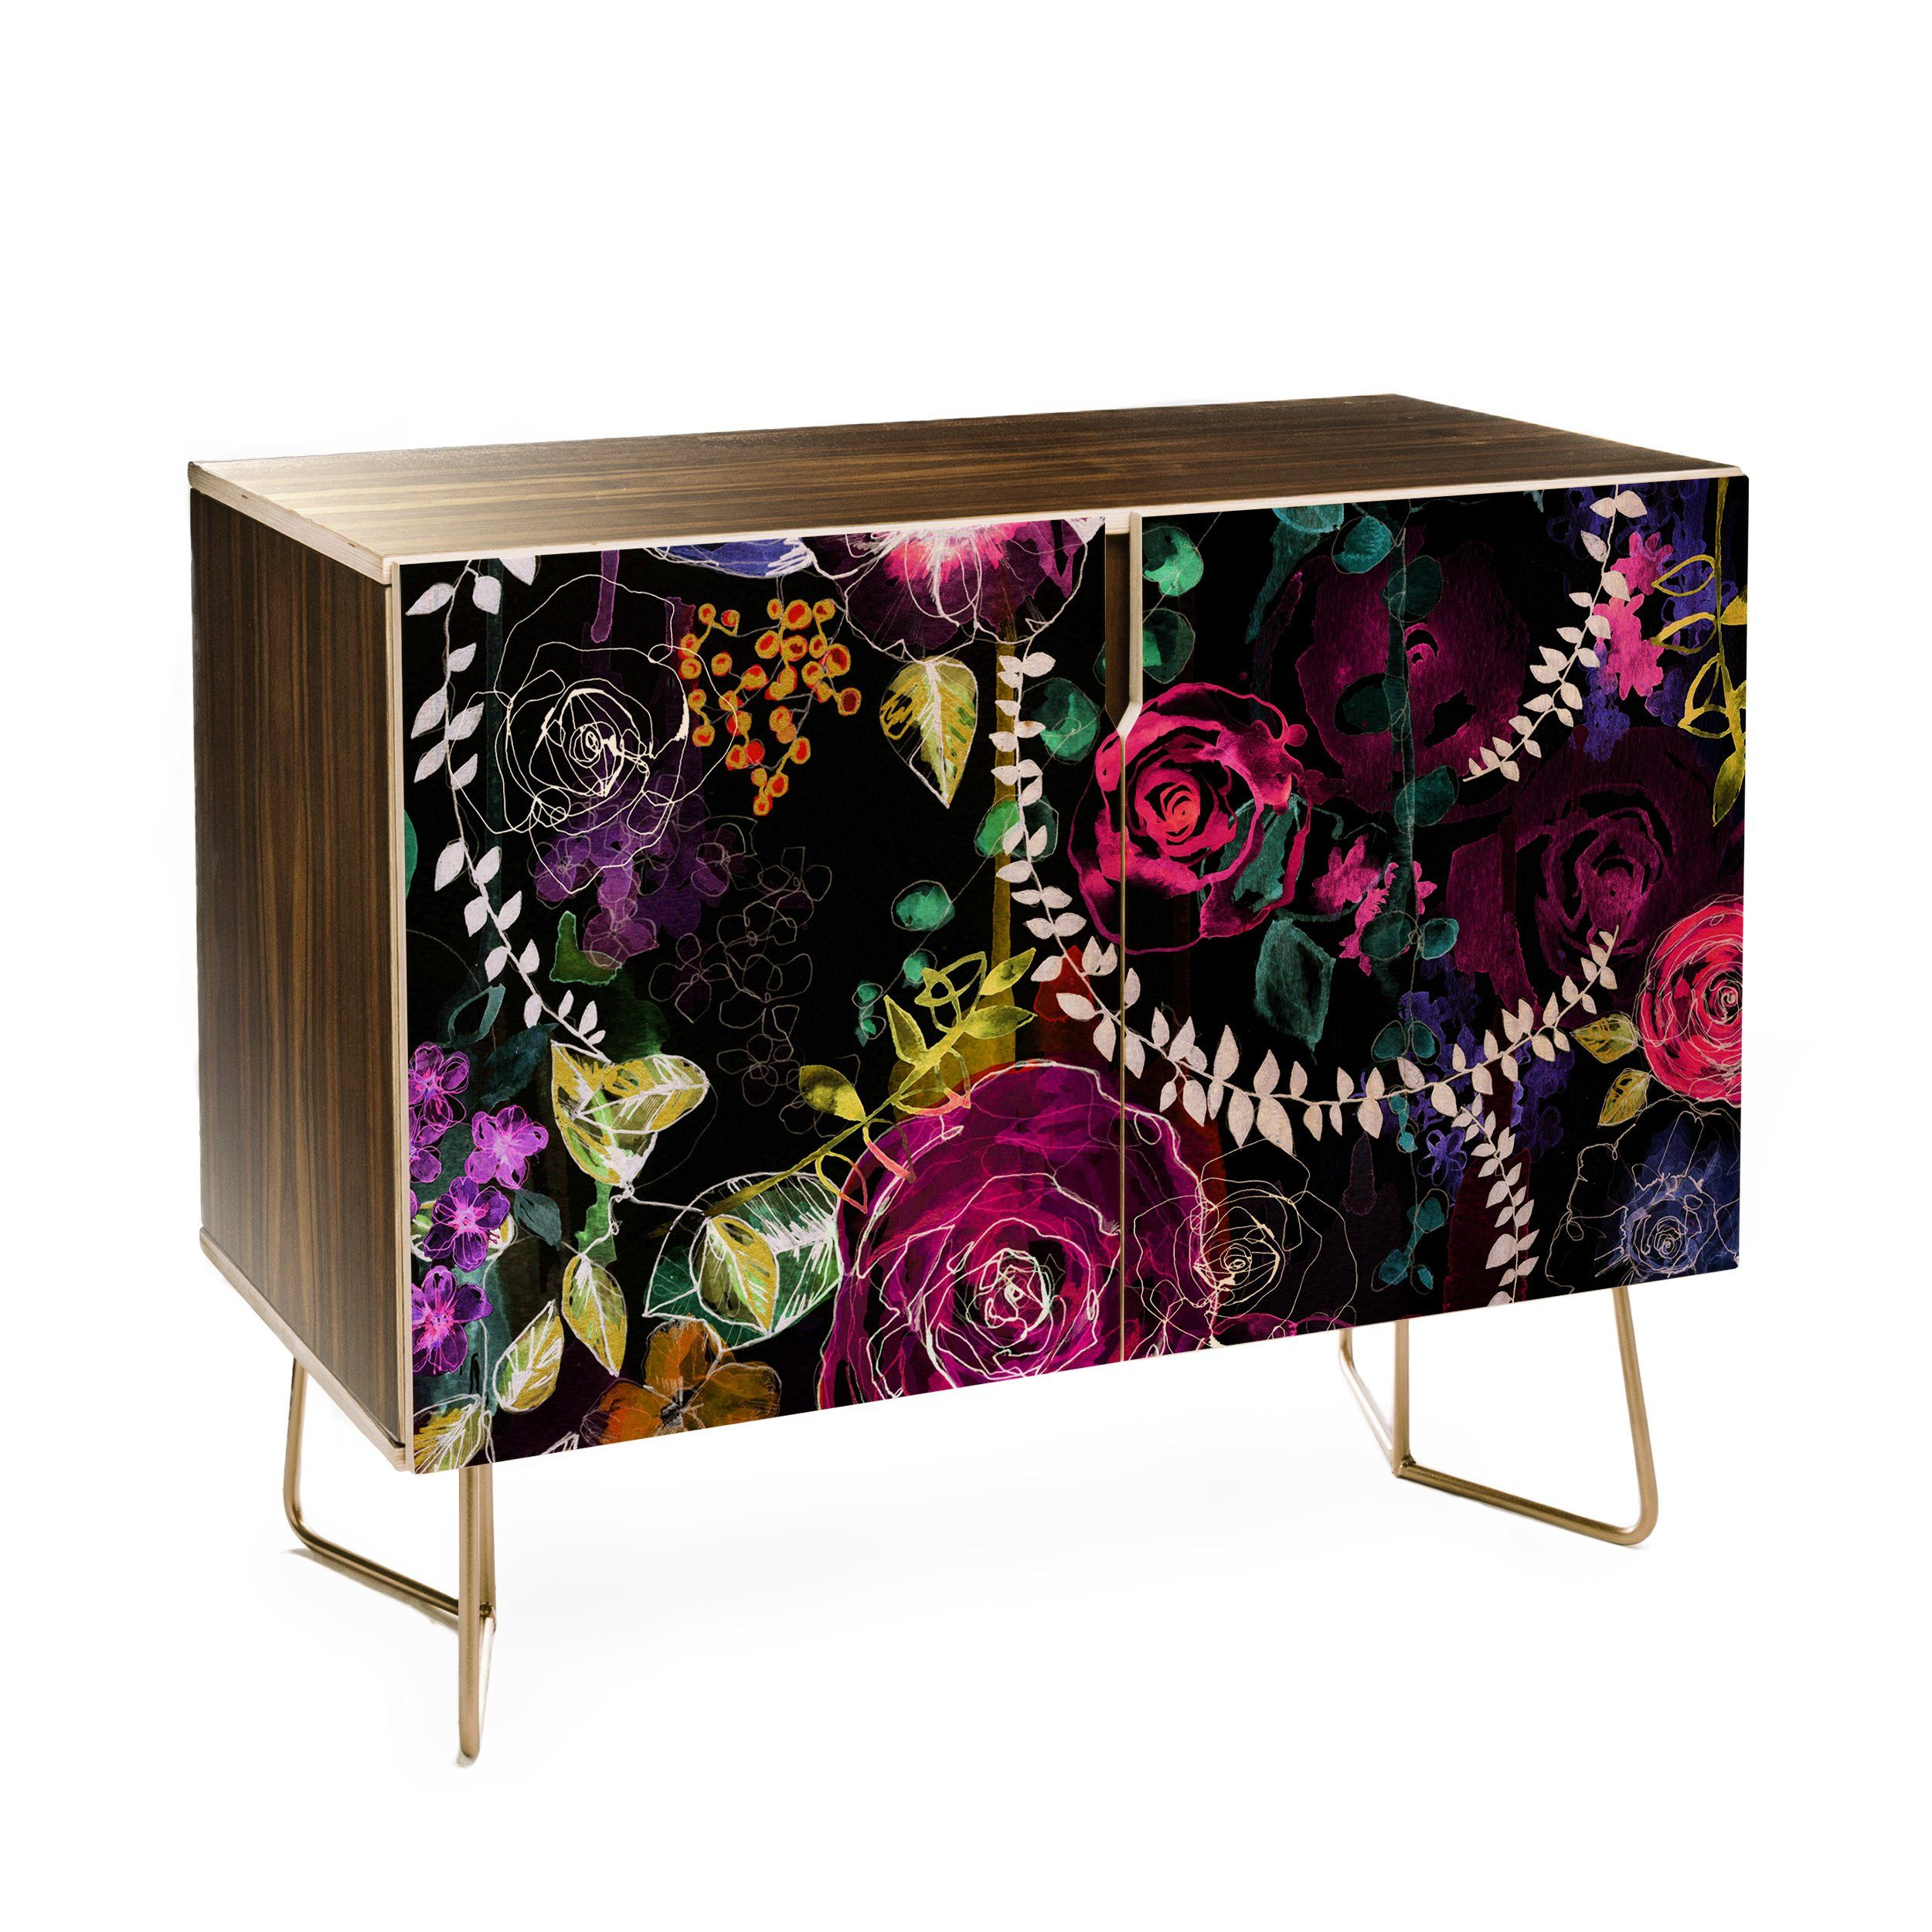 Holly Sharpe Rose Garden at Night Credenza is part of Rose garden Night -